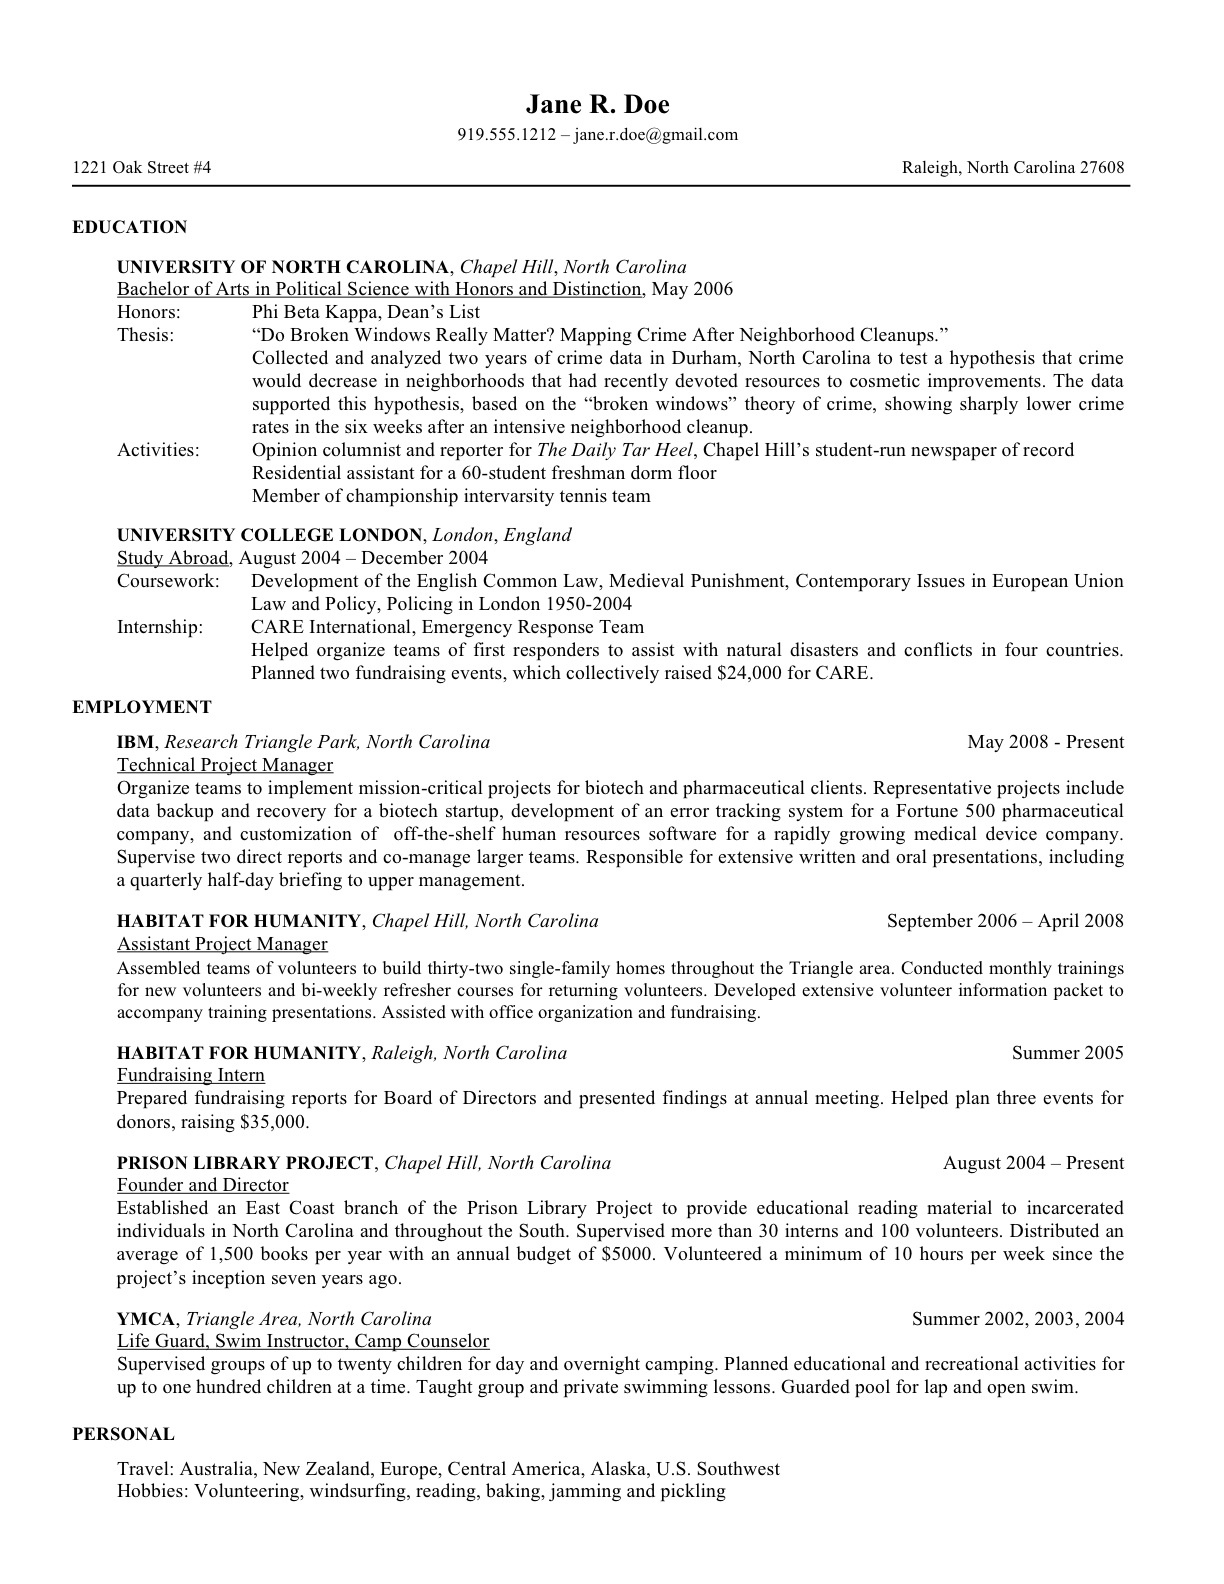 law school resume templates prepping your for of university at listing publications on Resume Listing Publications On A Resume Examples